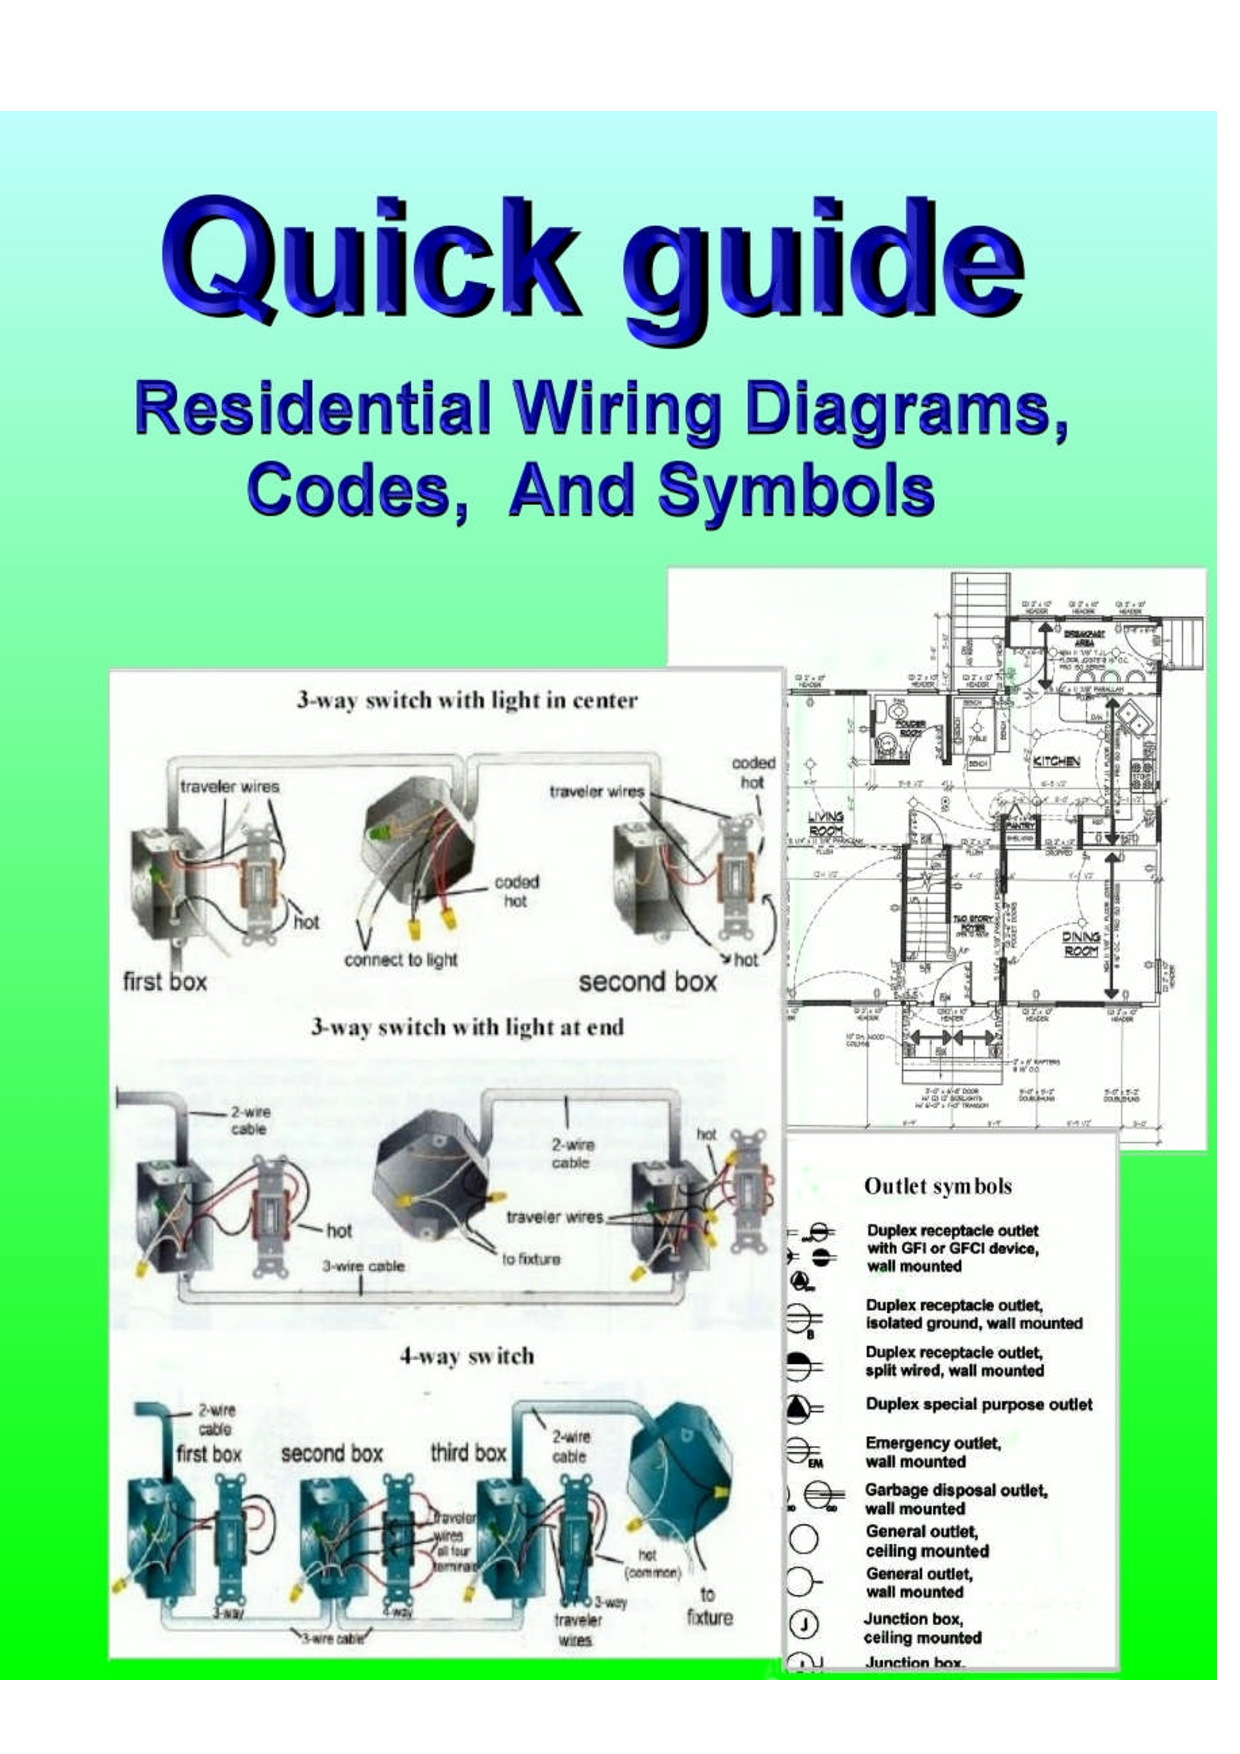 home electrical wiring diagrams pdf download legal documents 39 rh pinterest com